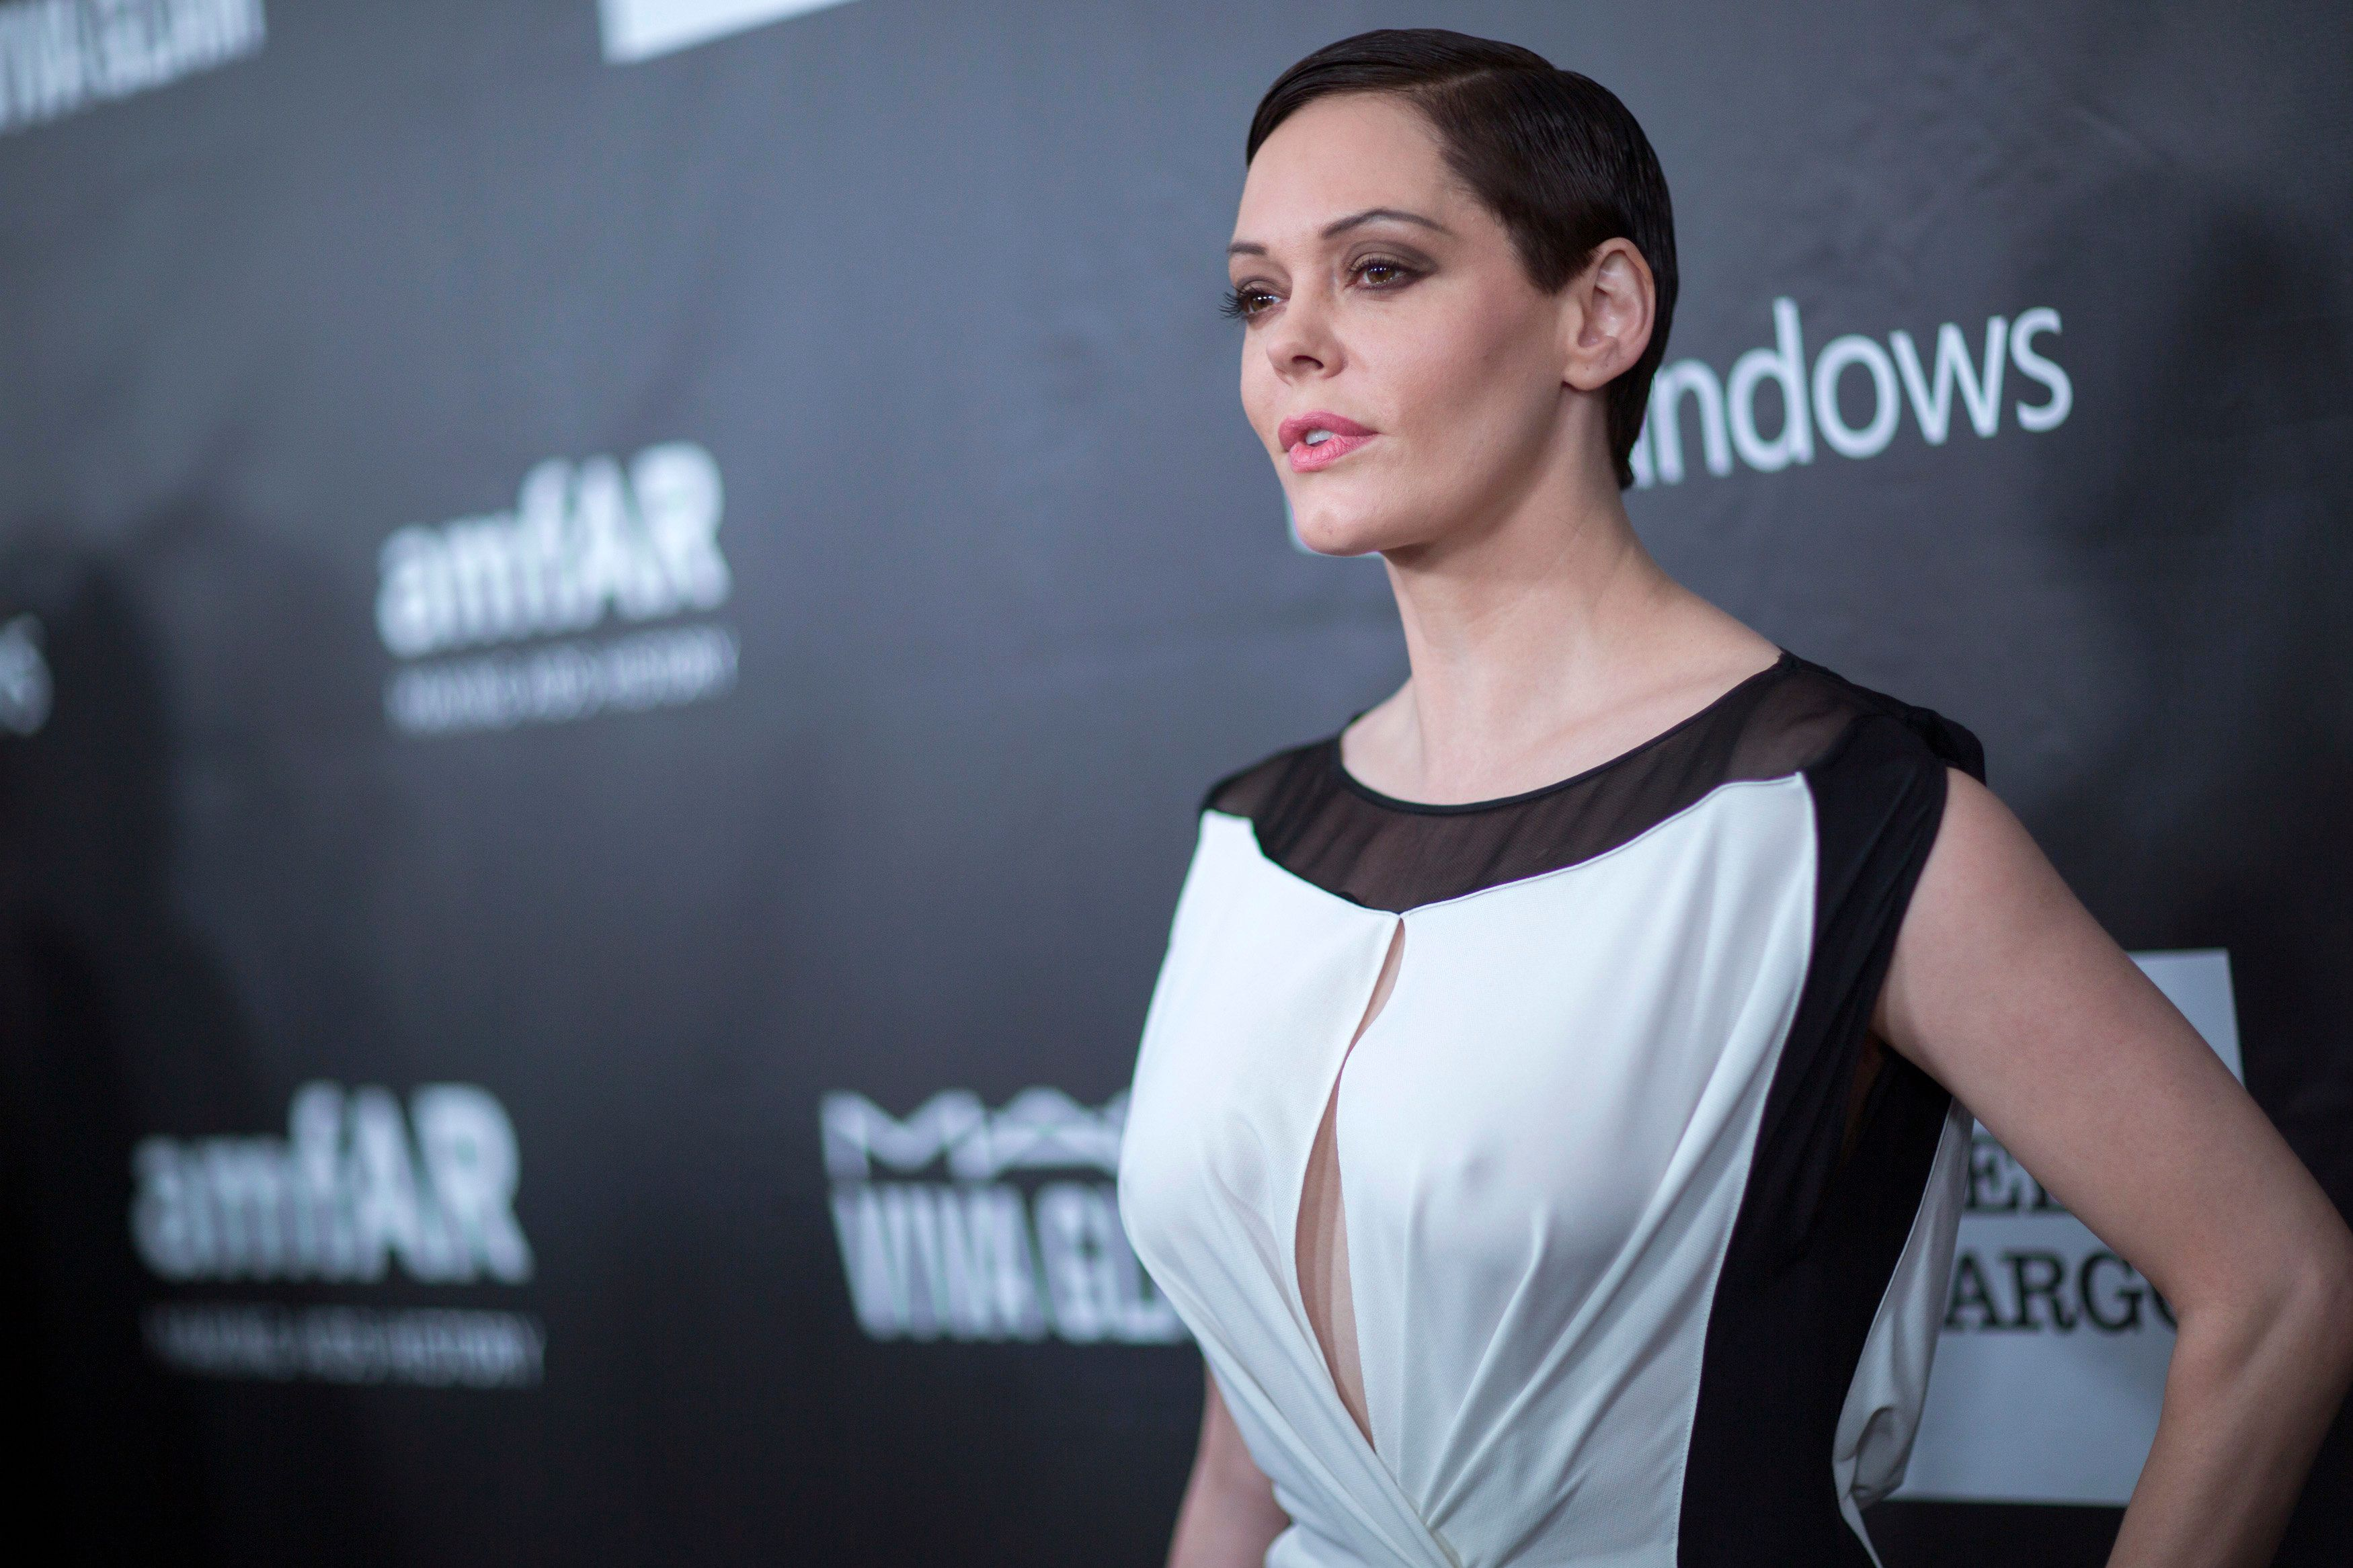 Twitter explains why it banned Rose McGowan